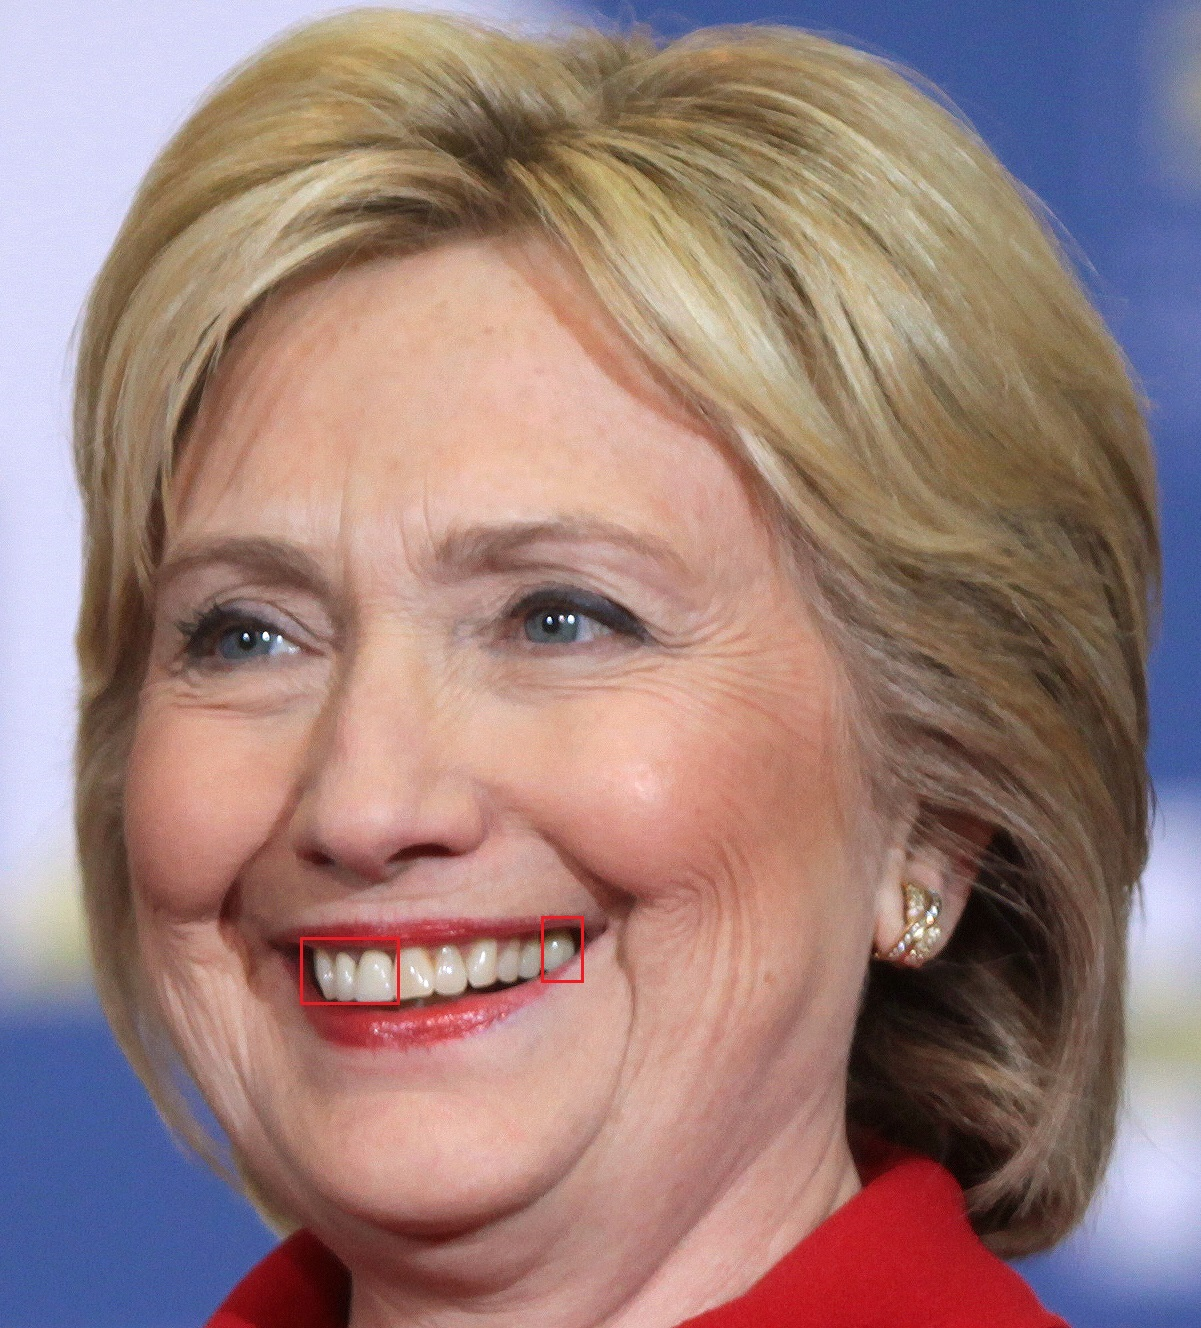 Image of Hillary Clinton with highlighted Dental Work